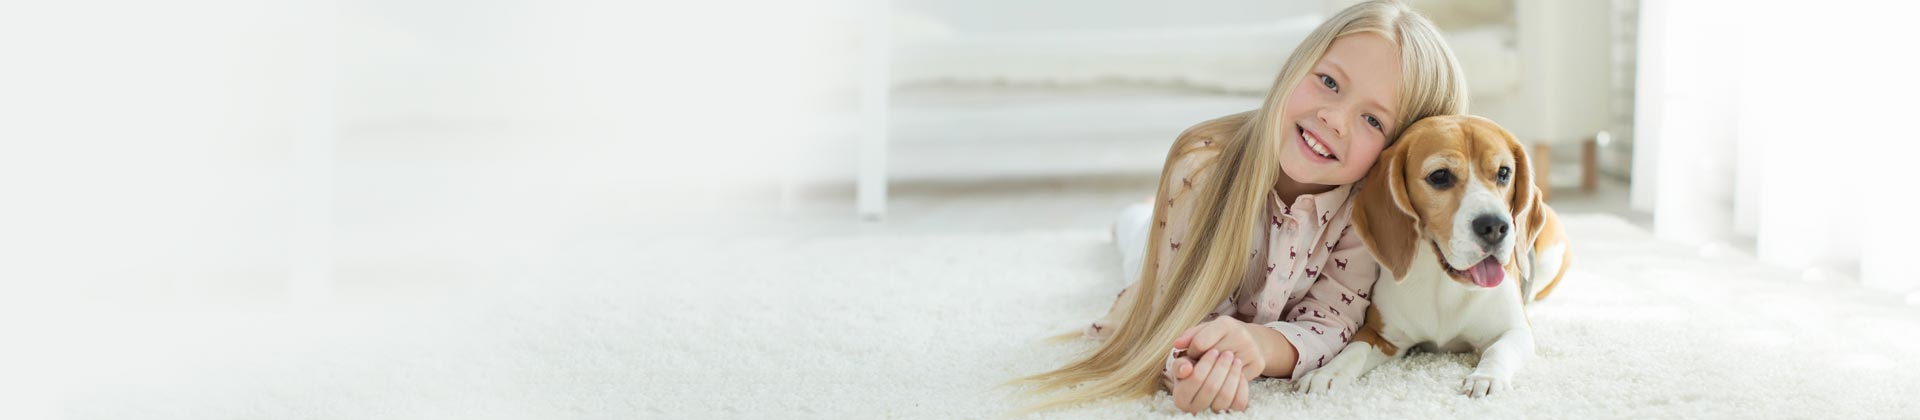 girl-and-dog-on-carpet